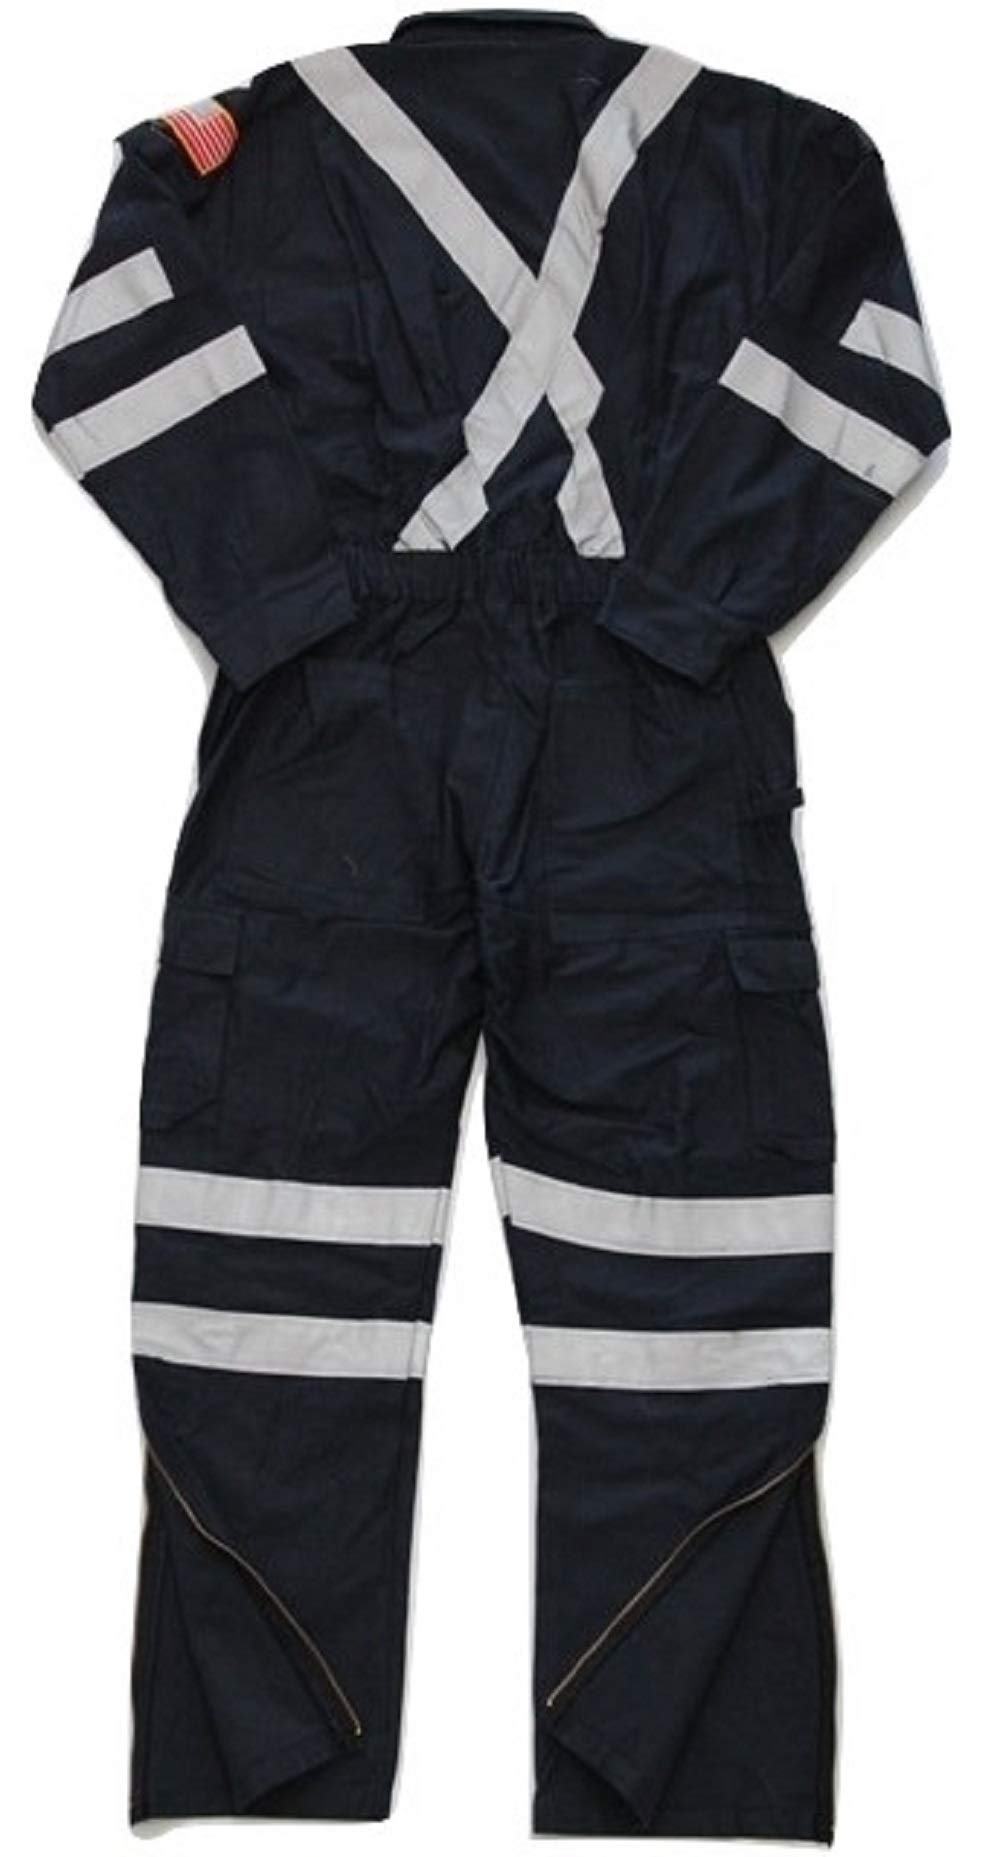 Premium High Visibility Hi Vis Coveralls with Leg Zipper (5XL - Regular, Navy Blue) by Just In Trend (Image #2)